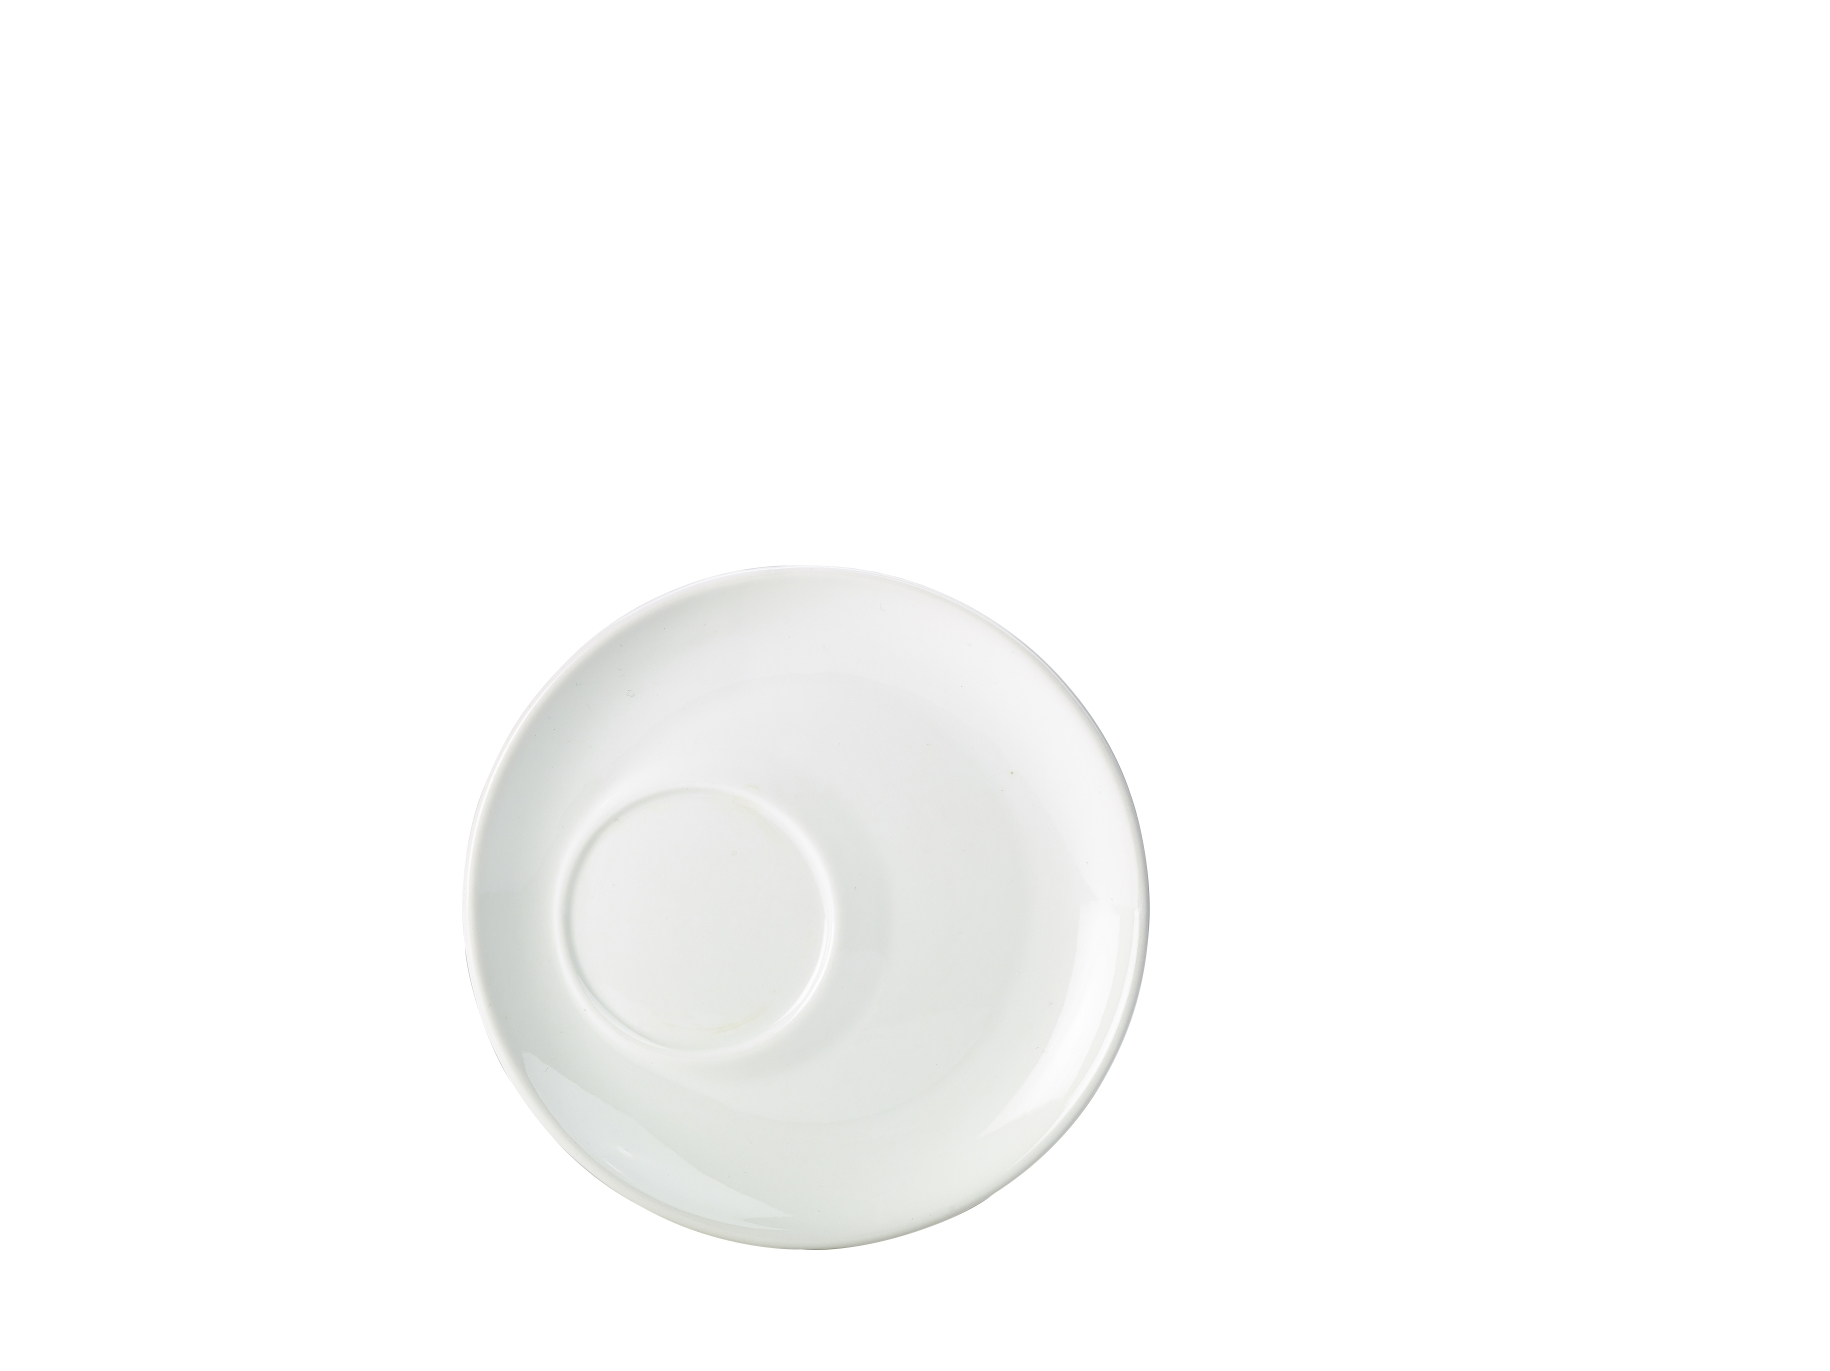 Offset Saucer For Cup 322140 Bowl Shape Cup